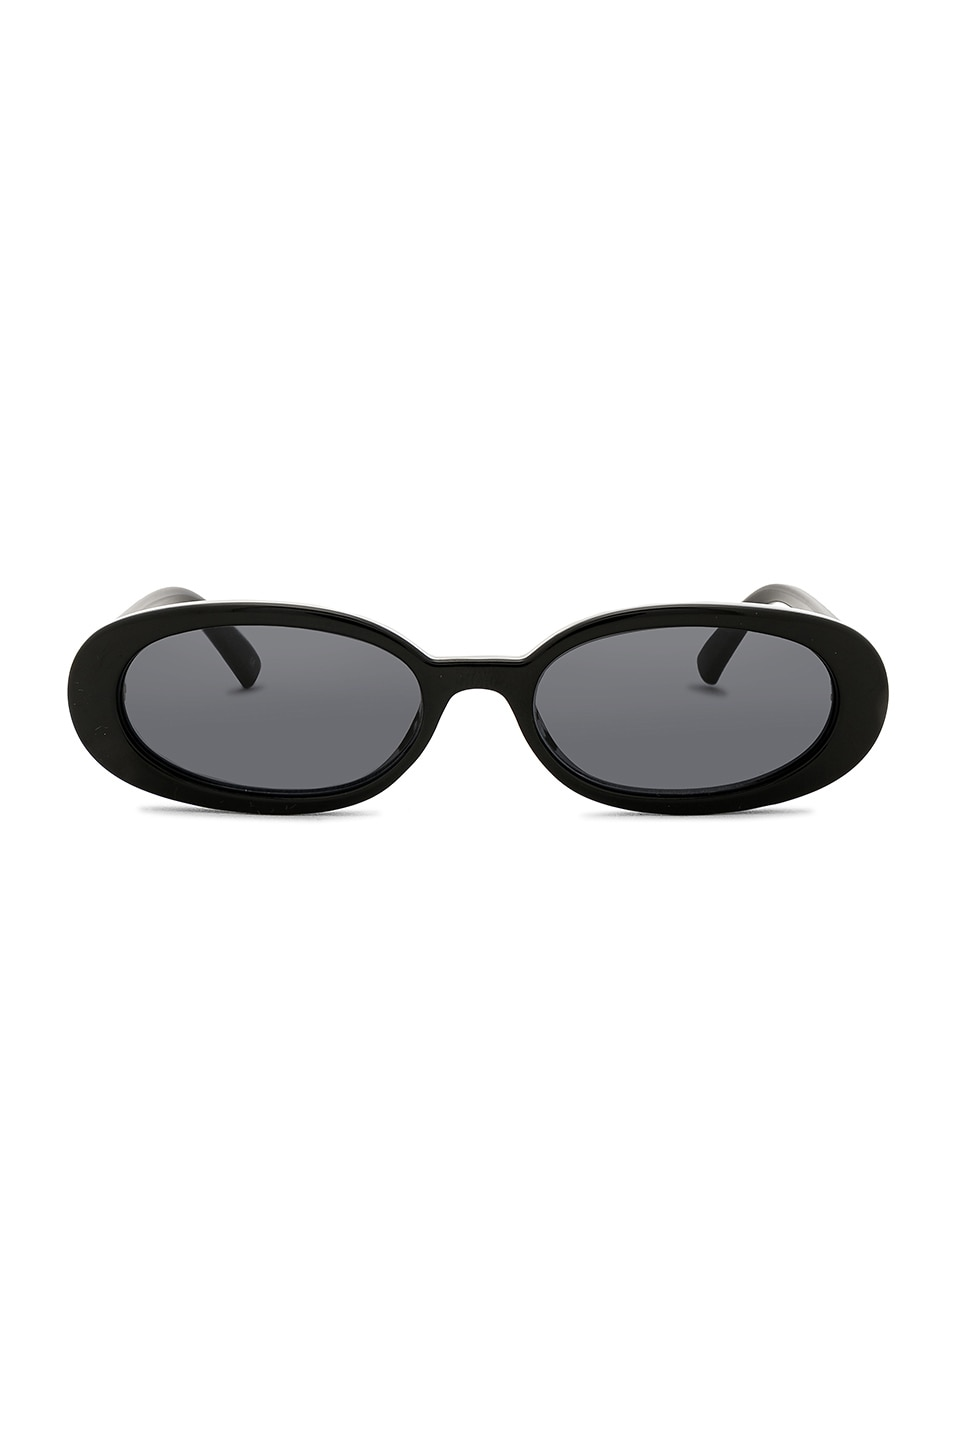 Le Specs Outta Love in Black & Smoke Mono